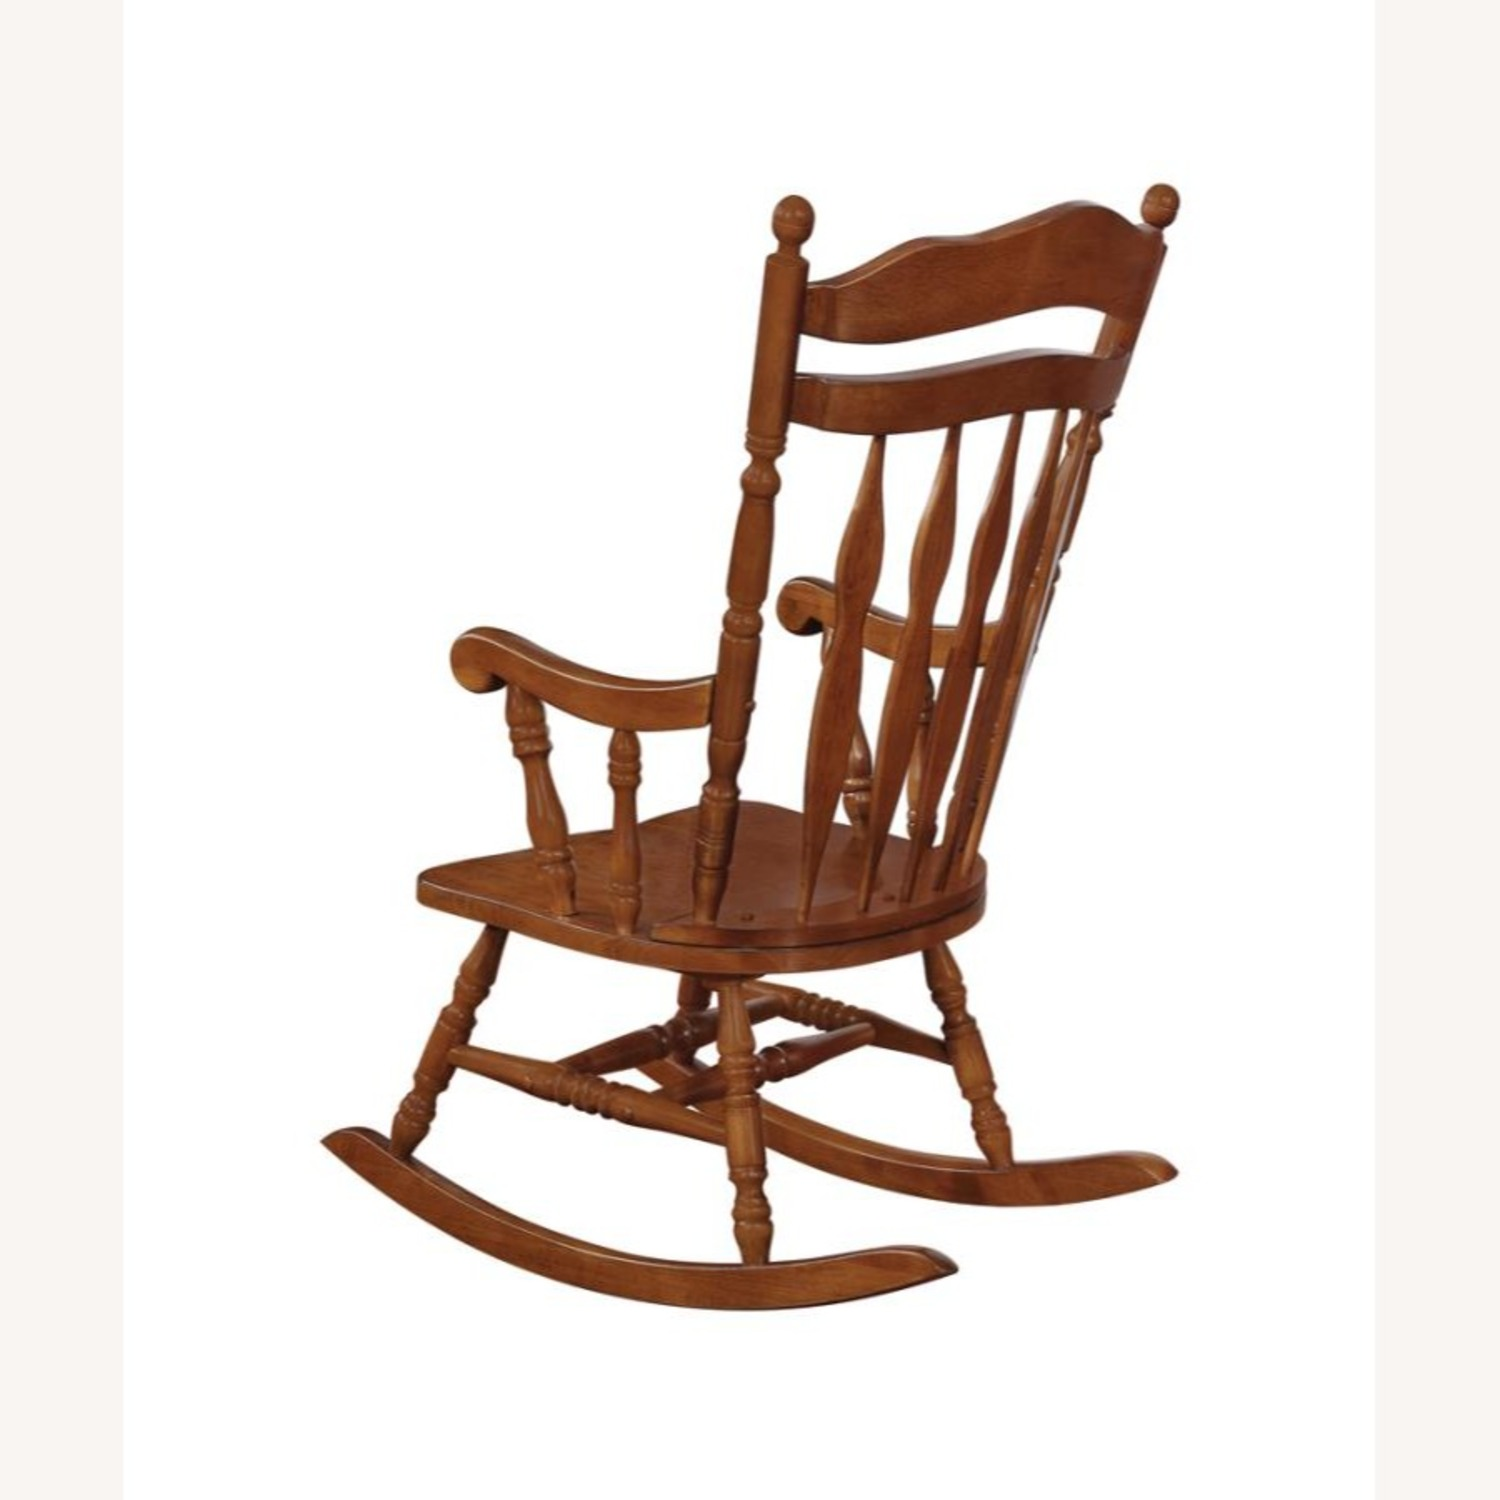 Rocking Chair In Medium Brown Rubberwood Finish - image-3